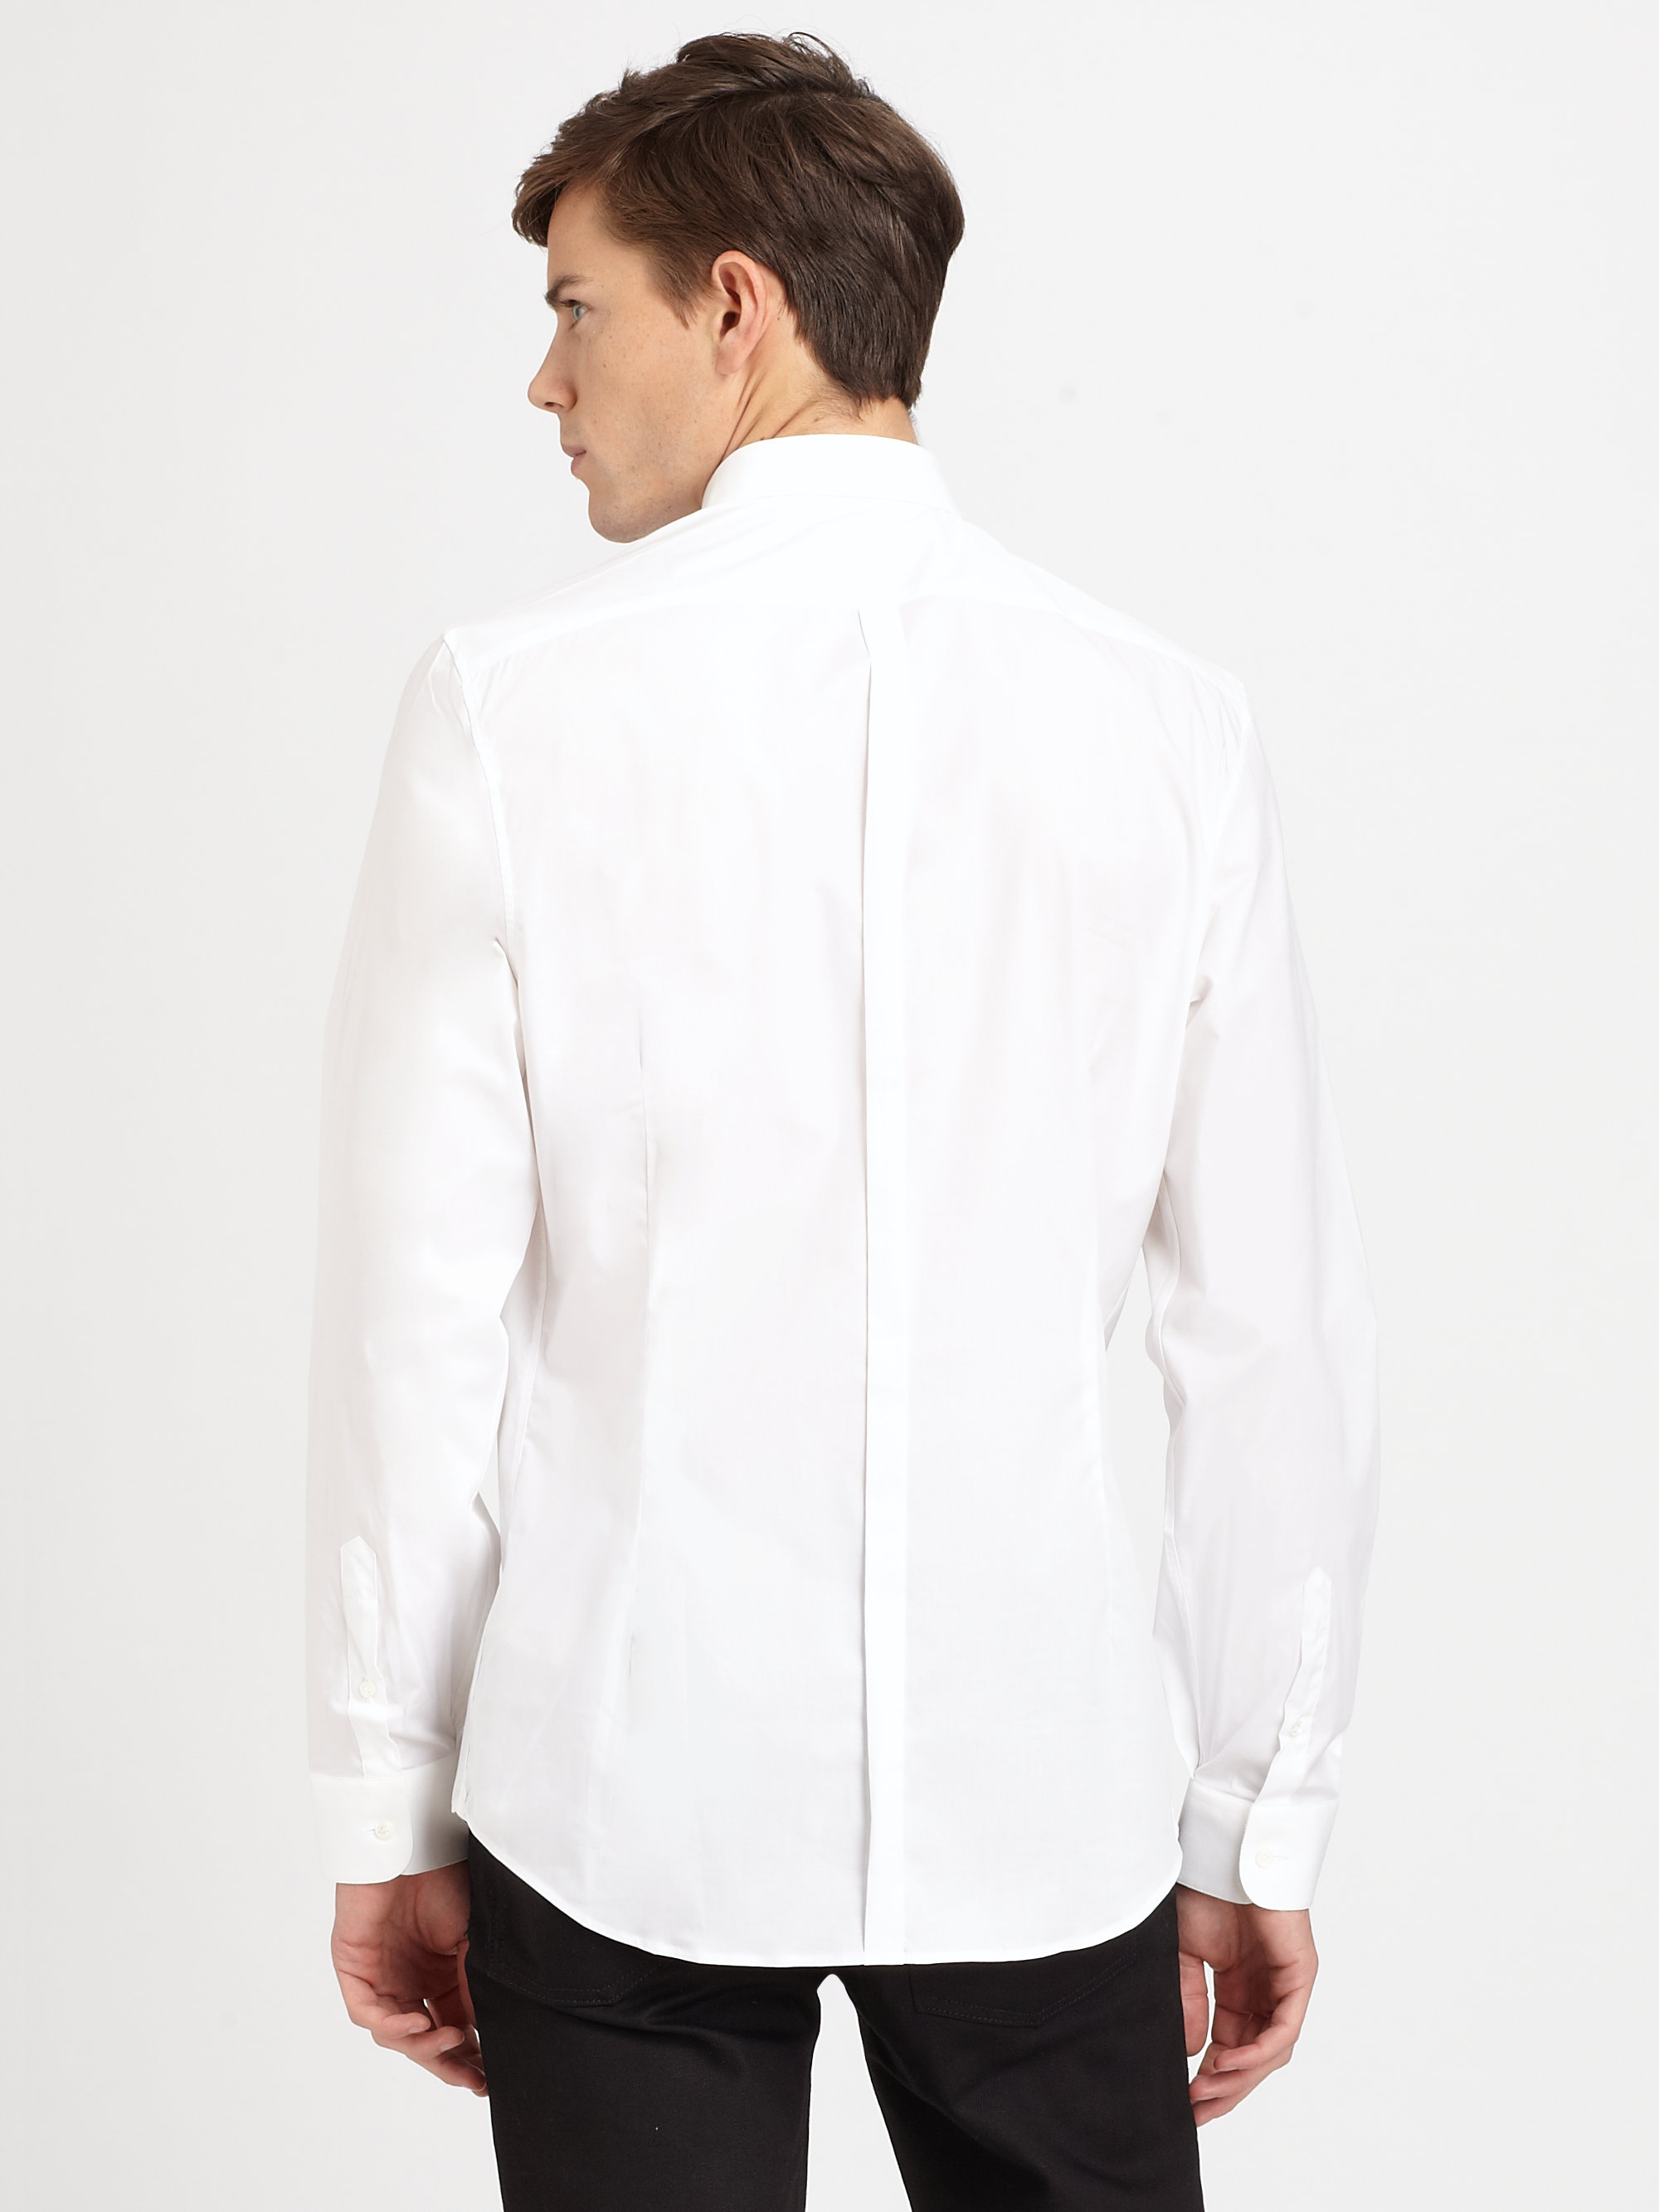 Burberry cotton button down shirt in white for men lyst for Cotton button down shirts men